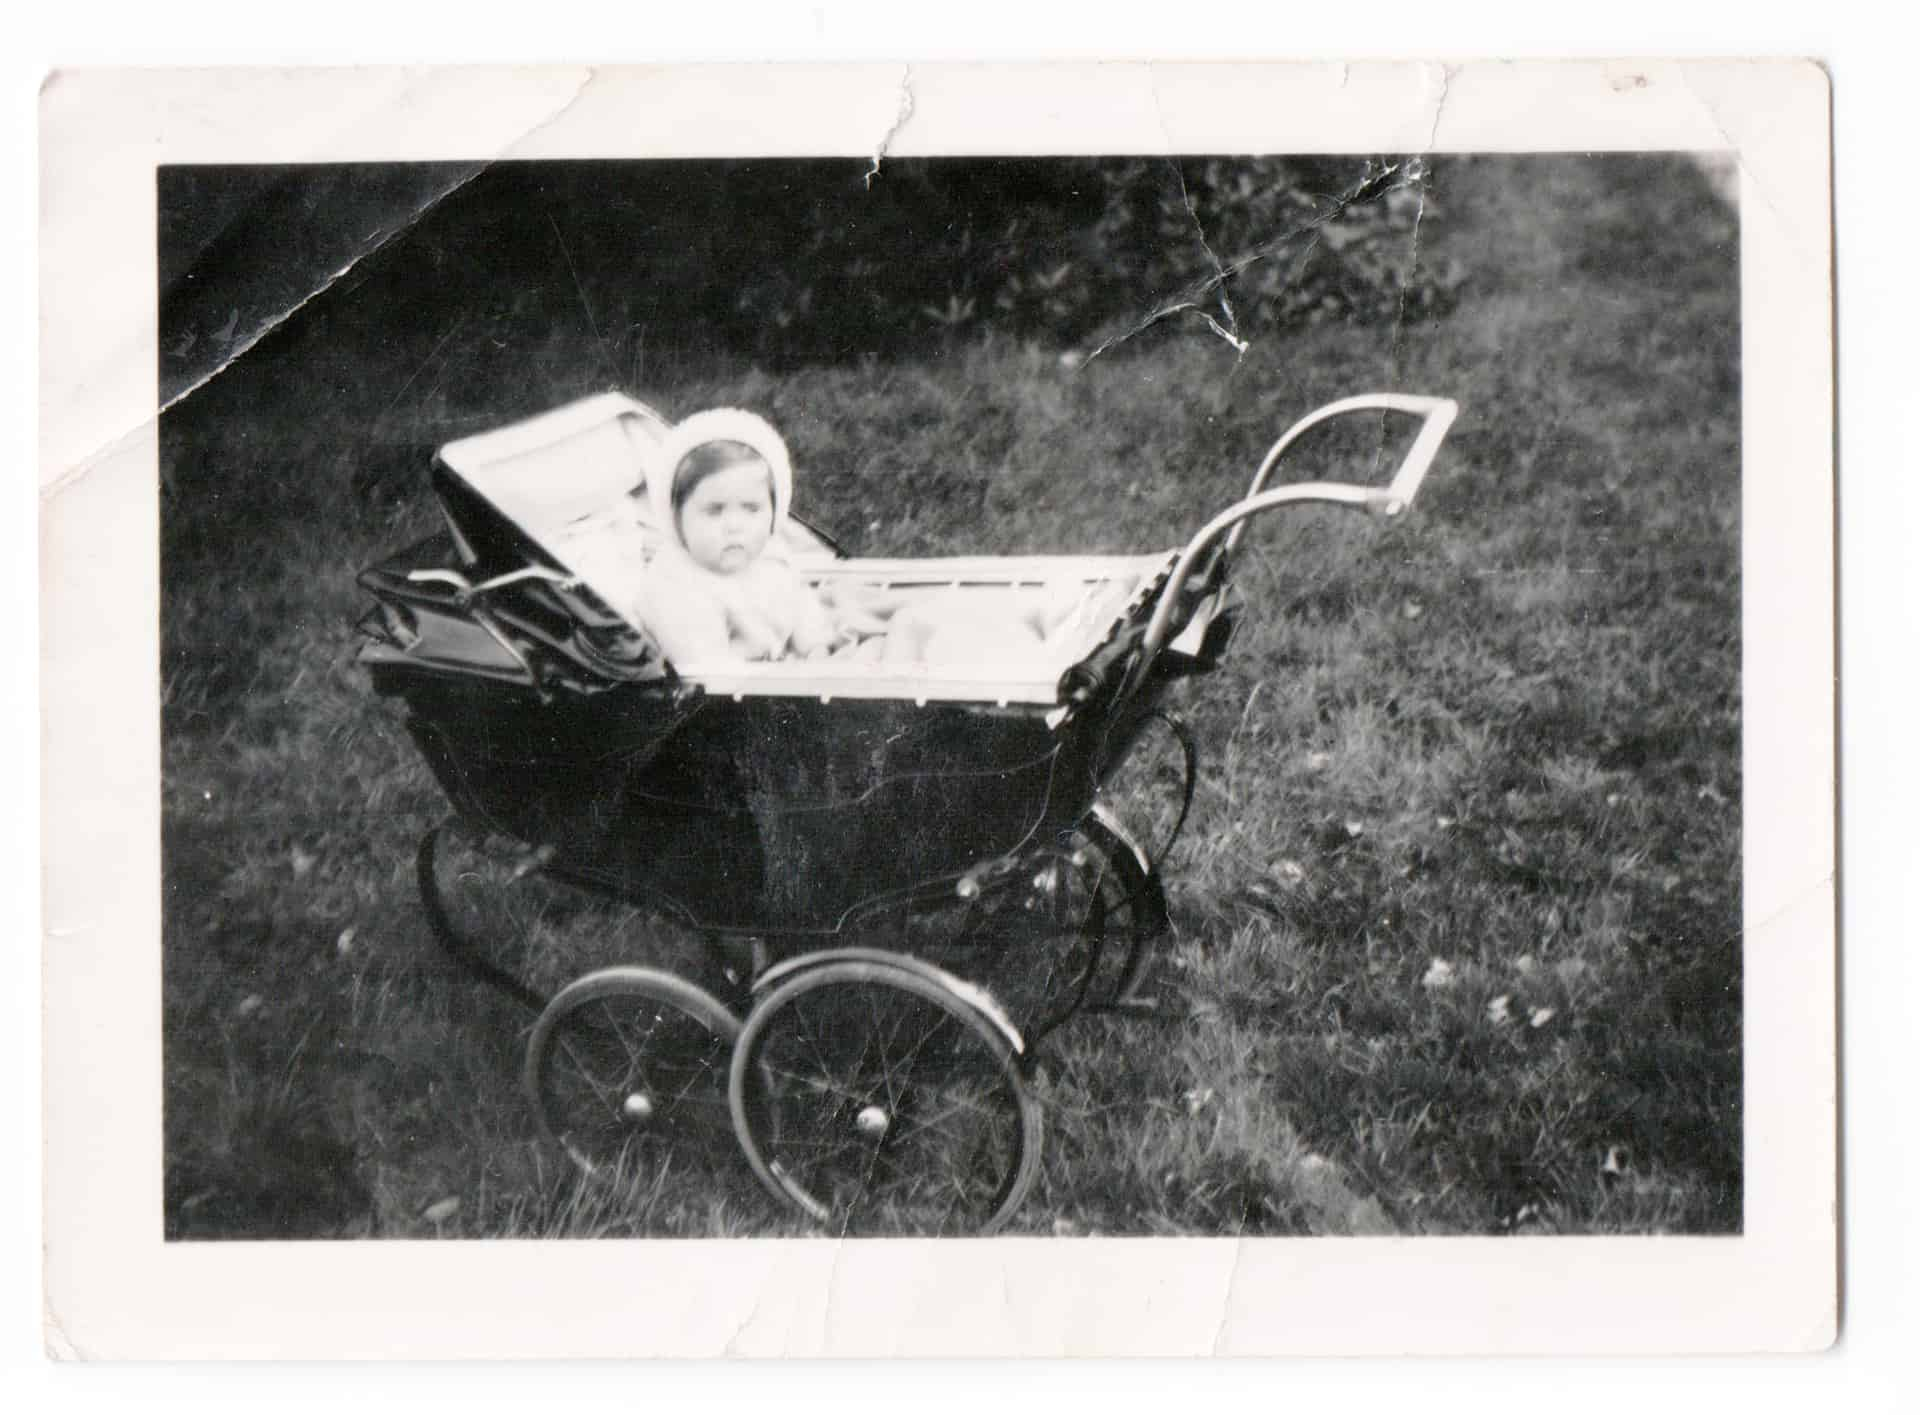 That's me there, and I do look very thoughtful. Apparently I was either asleep or awake and smiling, I was always a happy little baby.   I think both sides of our family just gelled, it was a time really when I guess most people didn't have much, so the joy was in the family.